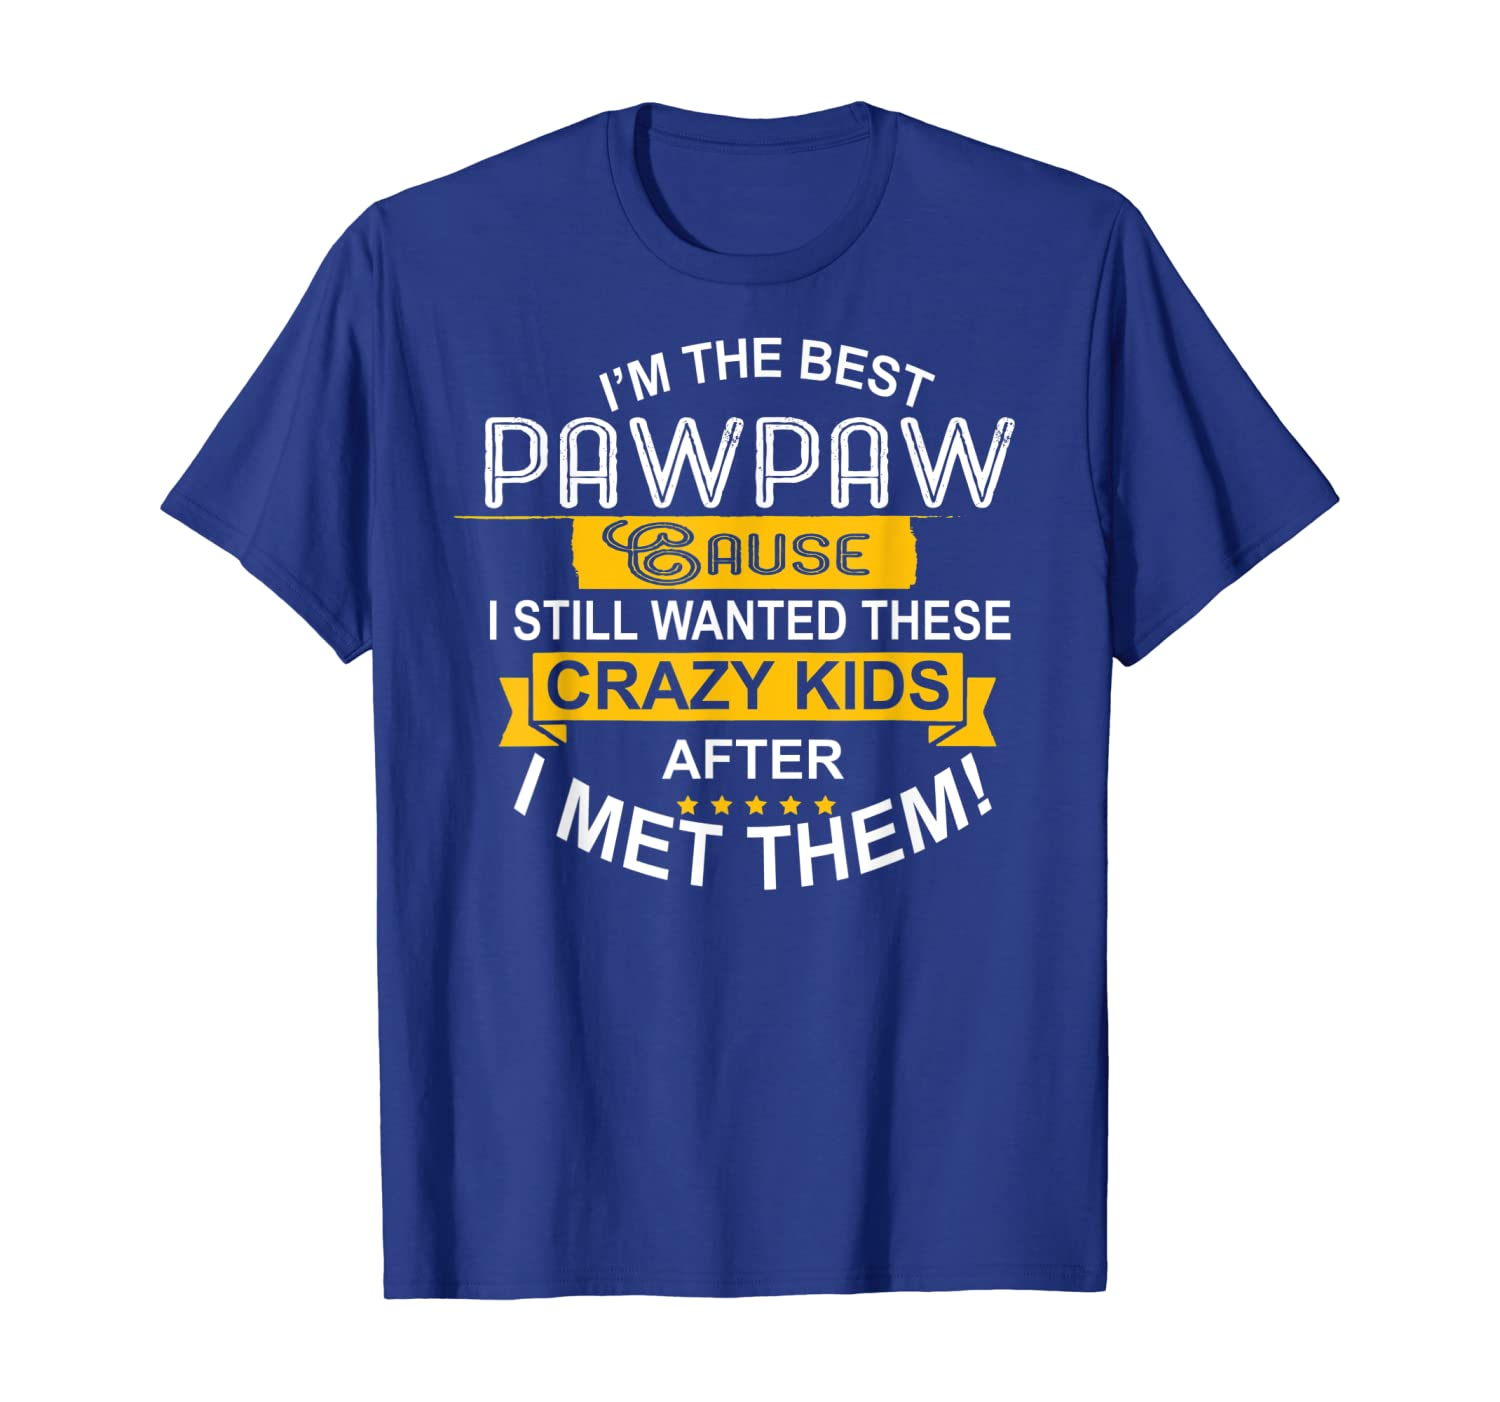 Im The Best Pawpaw Tshirt Funny Saying Idea Fathers Day - Dad Shirts Up To 5xl